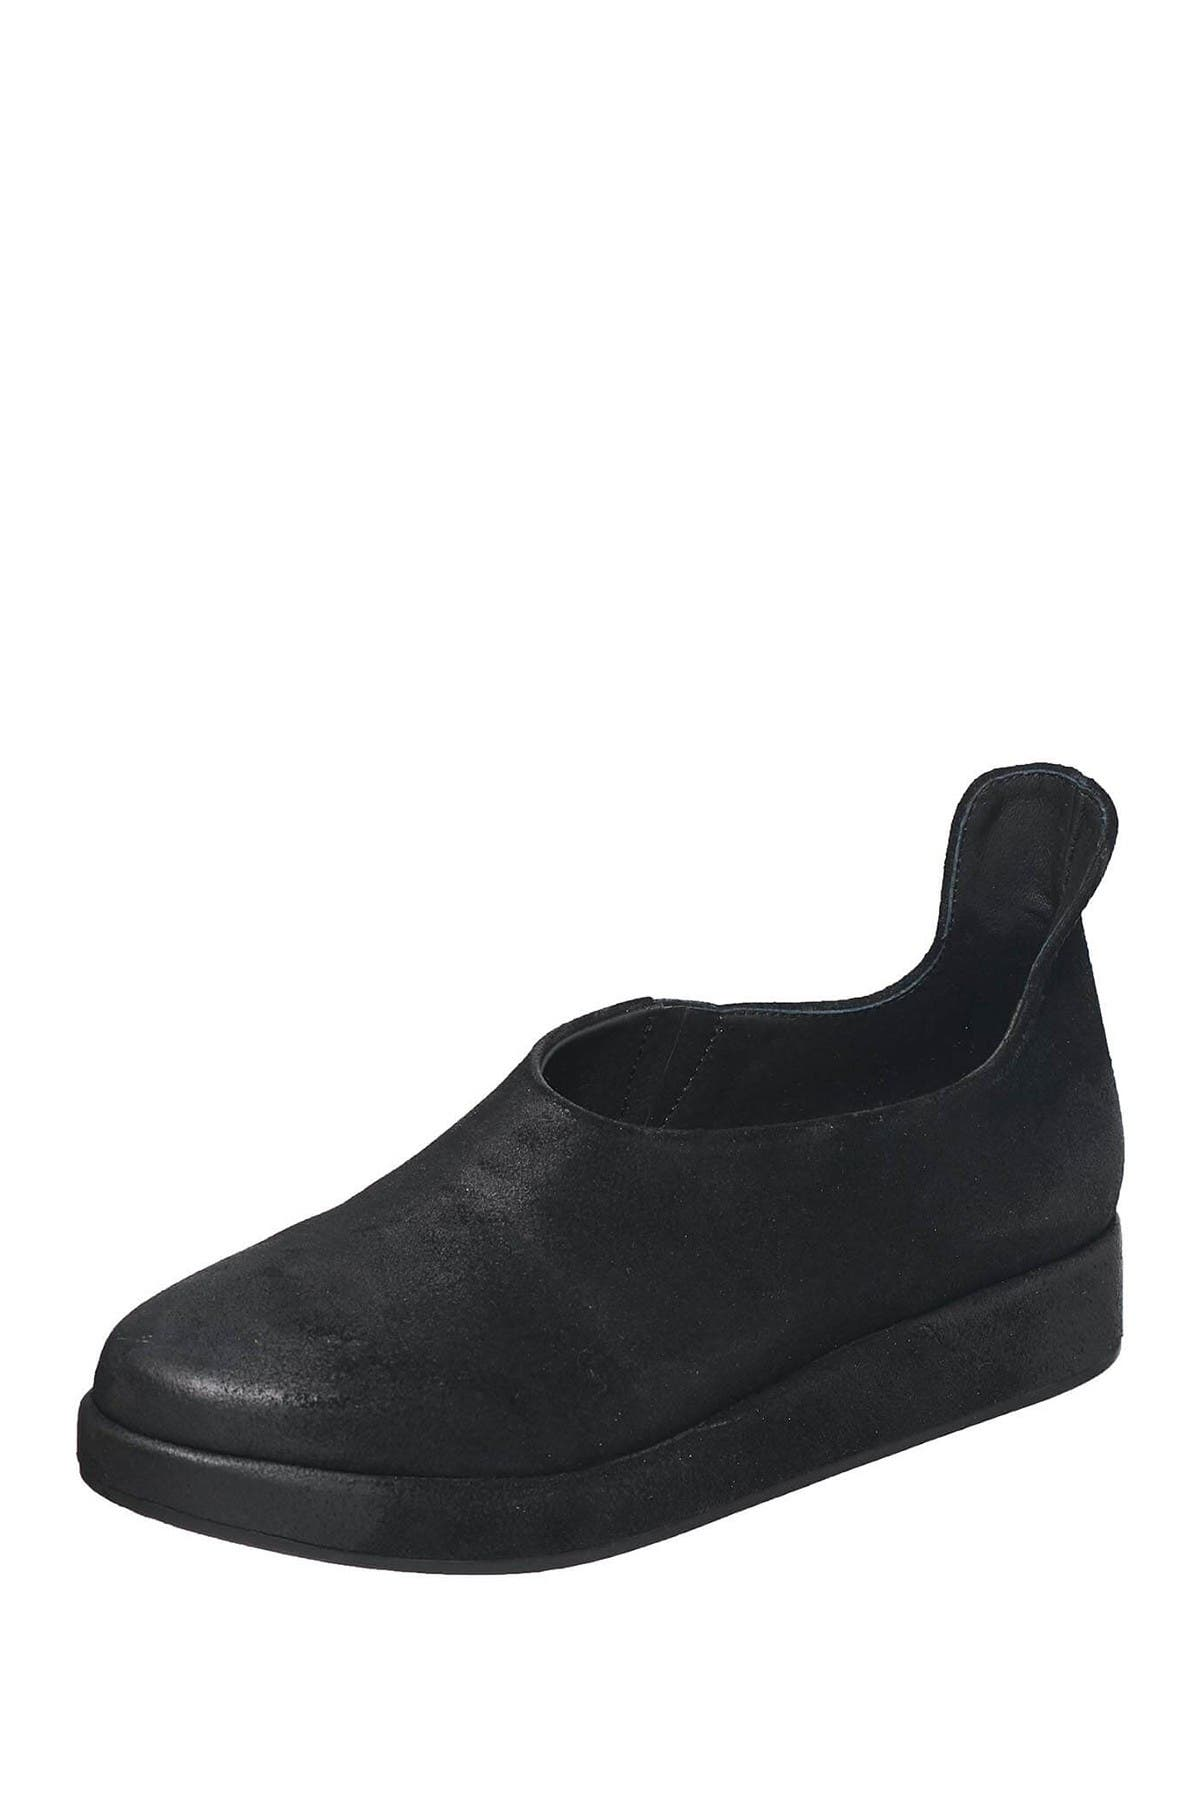 Image of Antelope Suede Slip-On Platform Flat